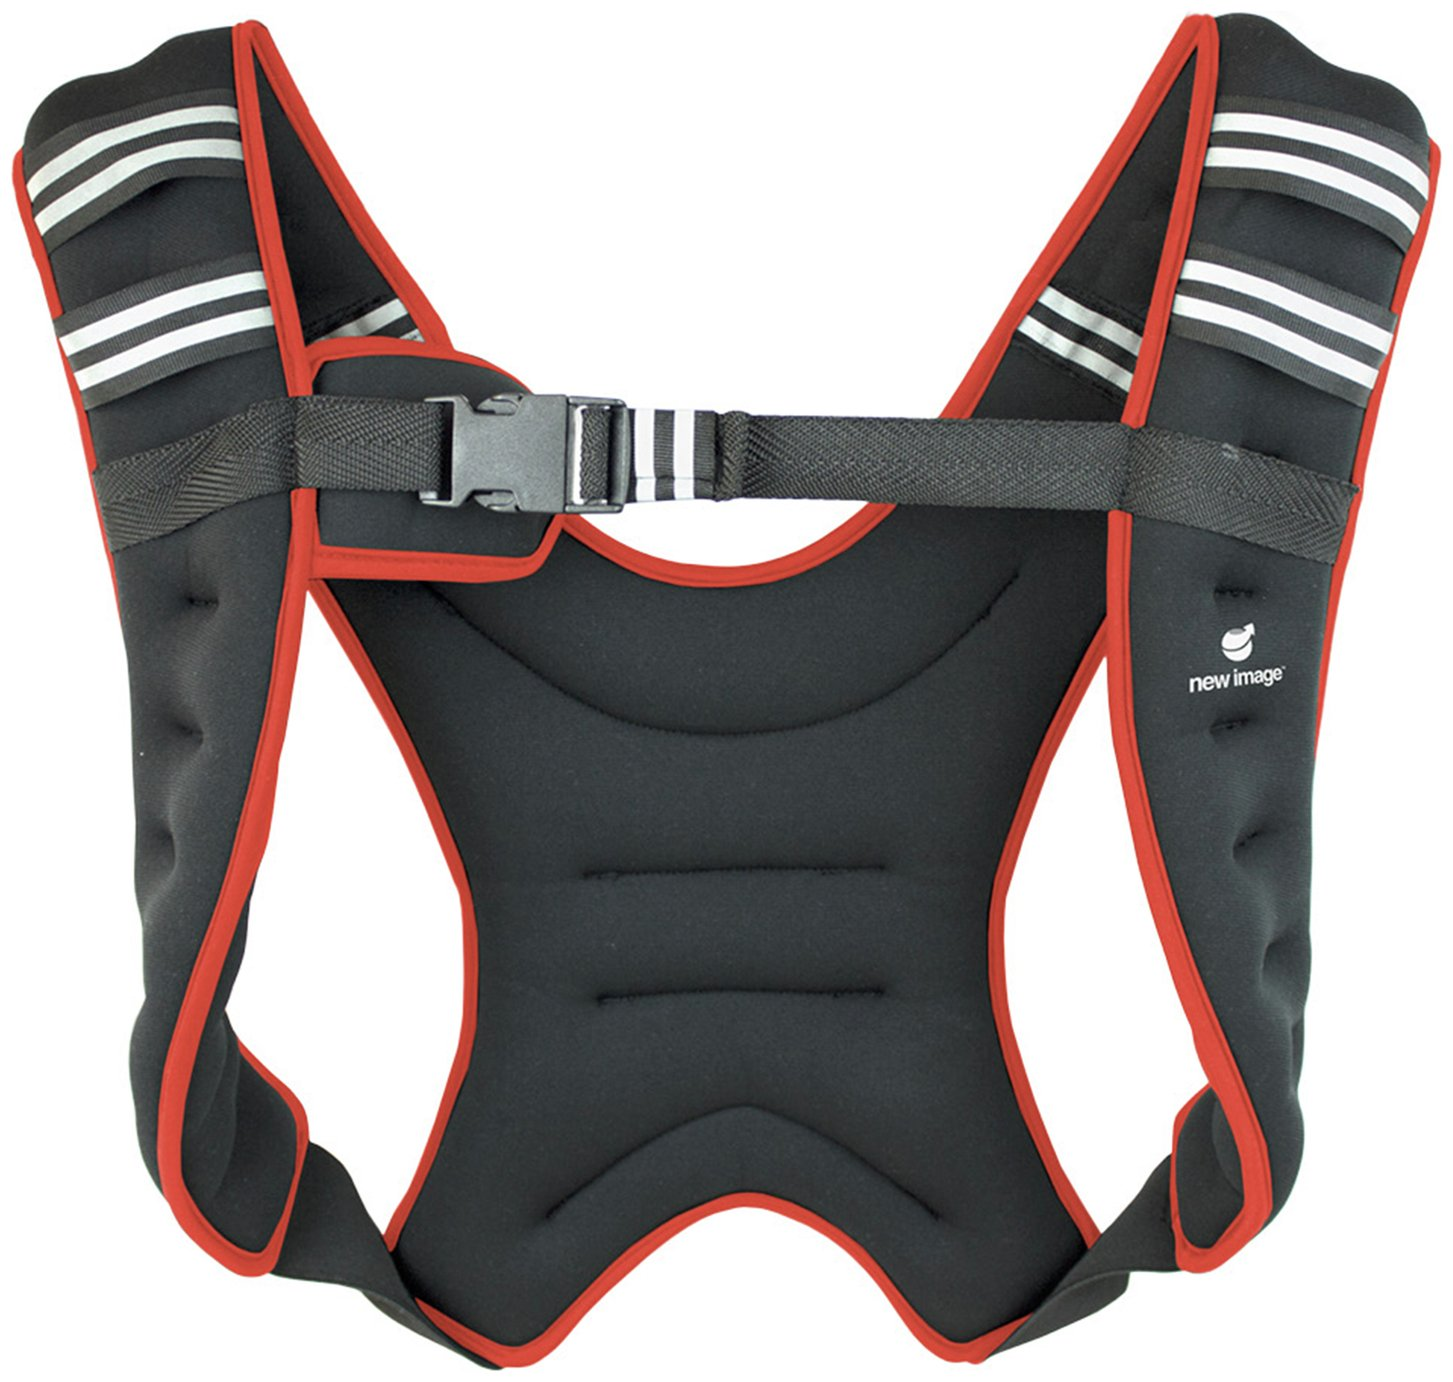 New Image Weighted Vest - 5kg